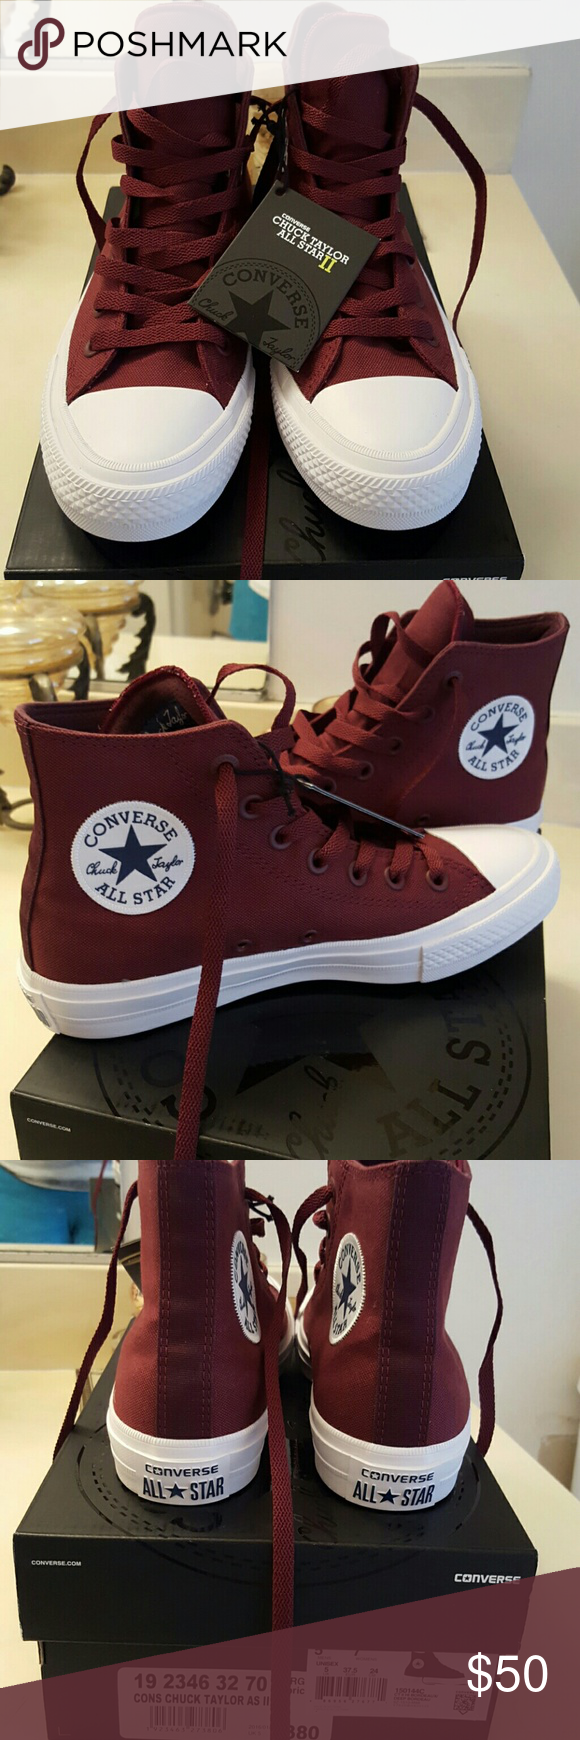 f110b9128d37  NEW  Converse Shoes  NEW  Converse Chuck Taylor All Star II high tops in  burgandy. These shoes are better quality than the usual Chucks with more  padding ...